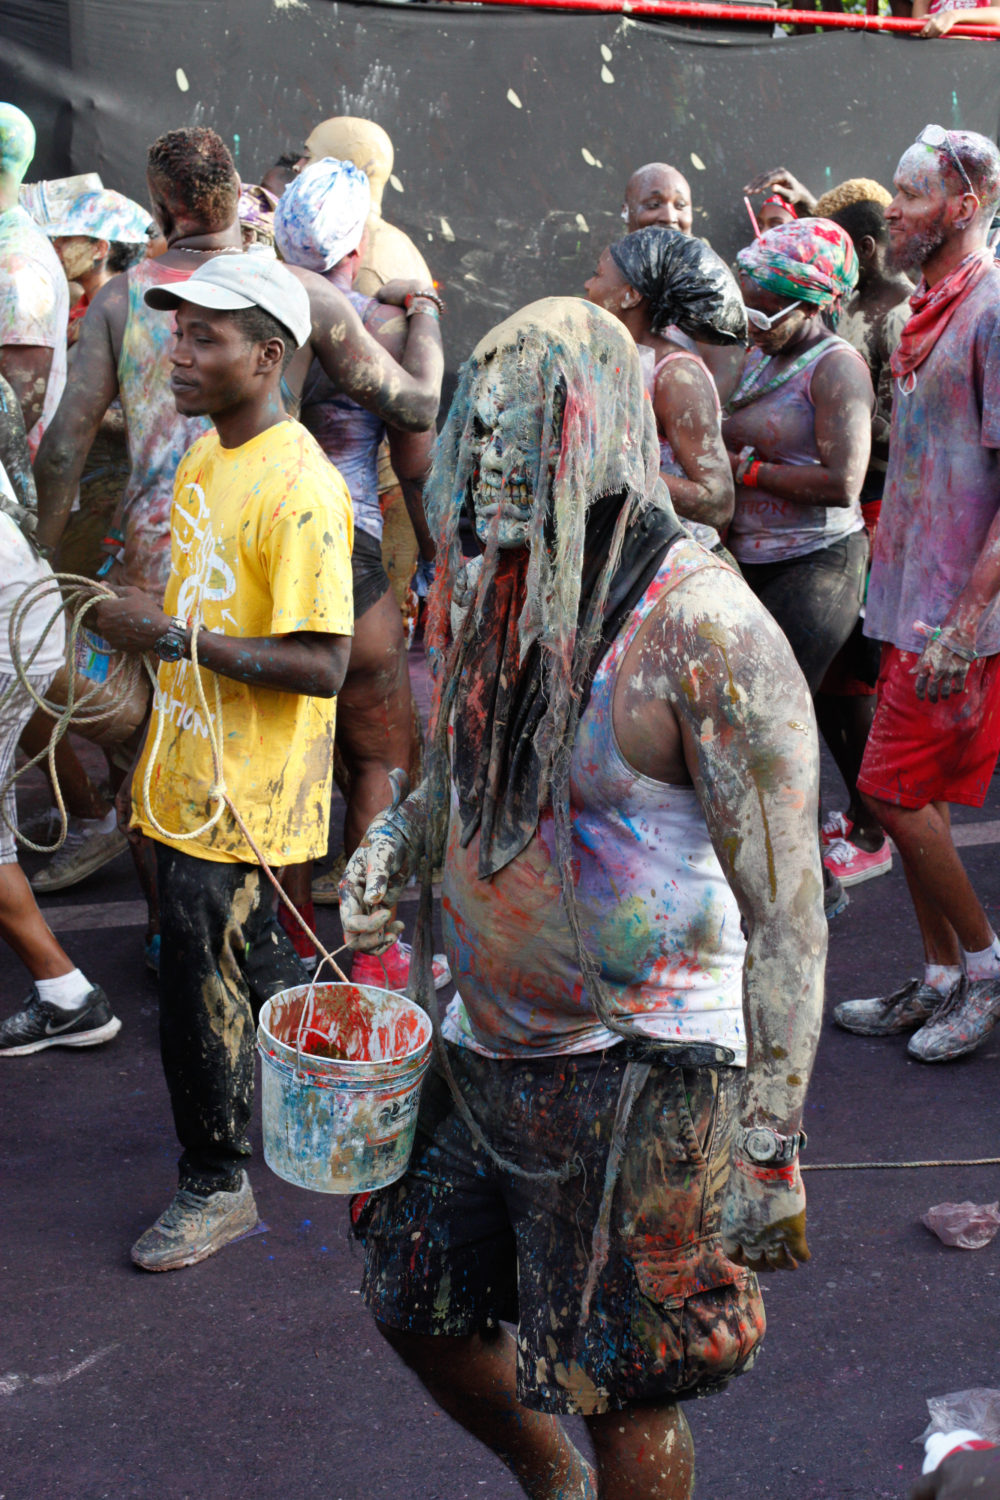 Some kind of J'Ouvert creature